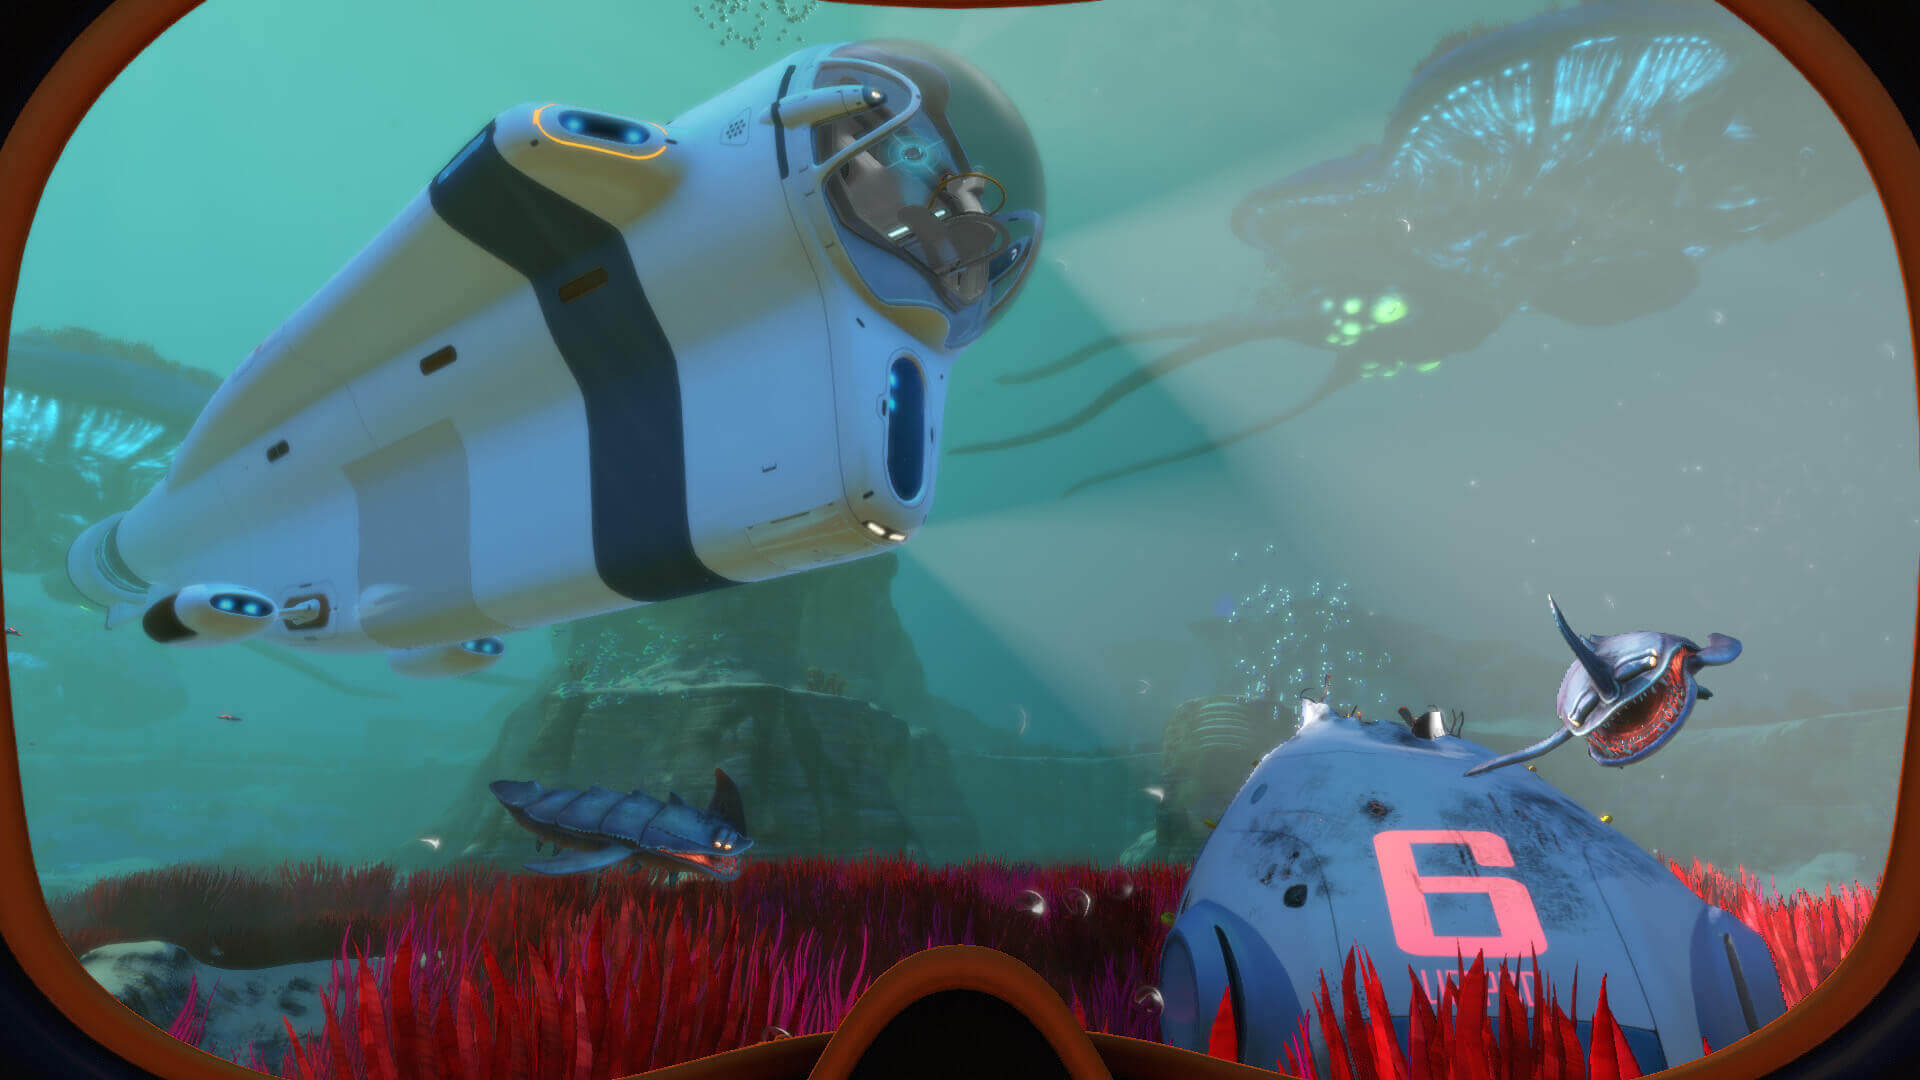 Get Subnautica for free on the Epic Games store right now | Trusted Reviews